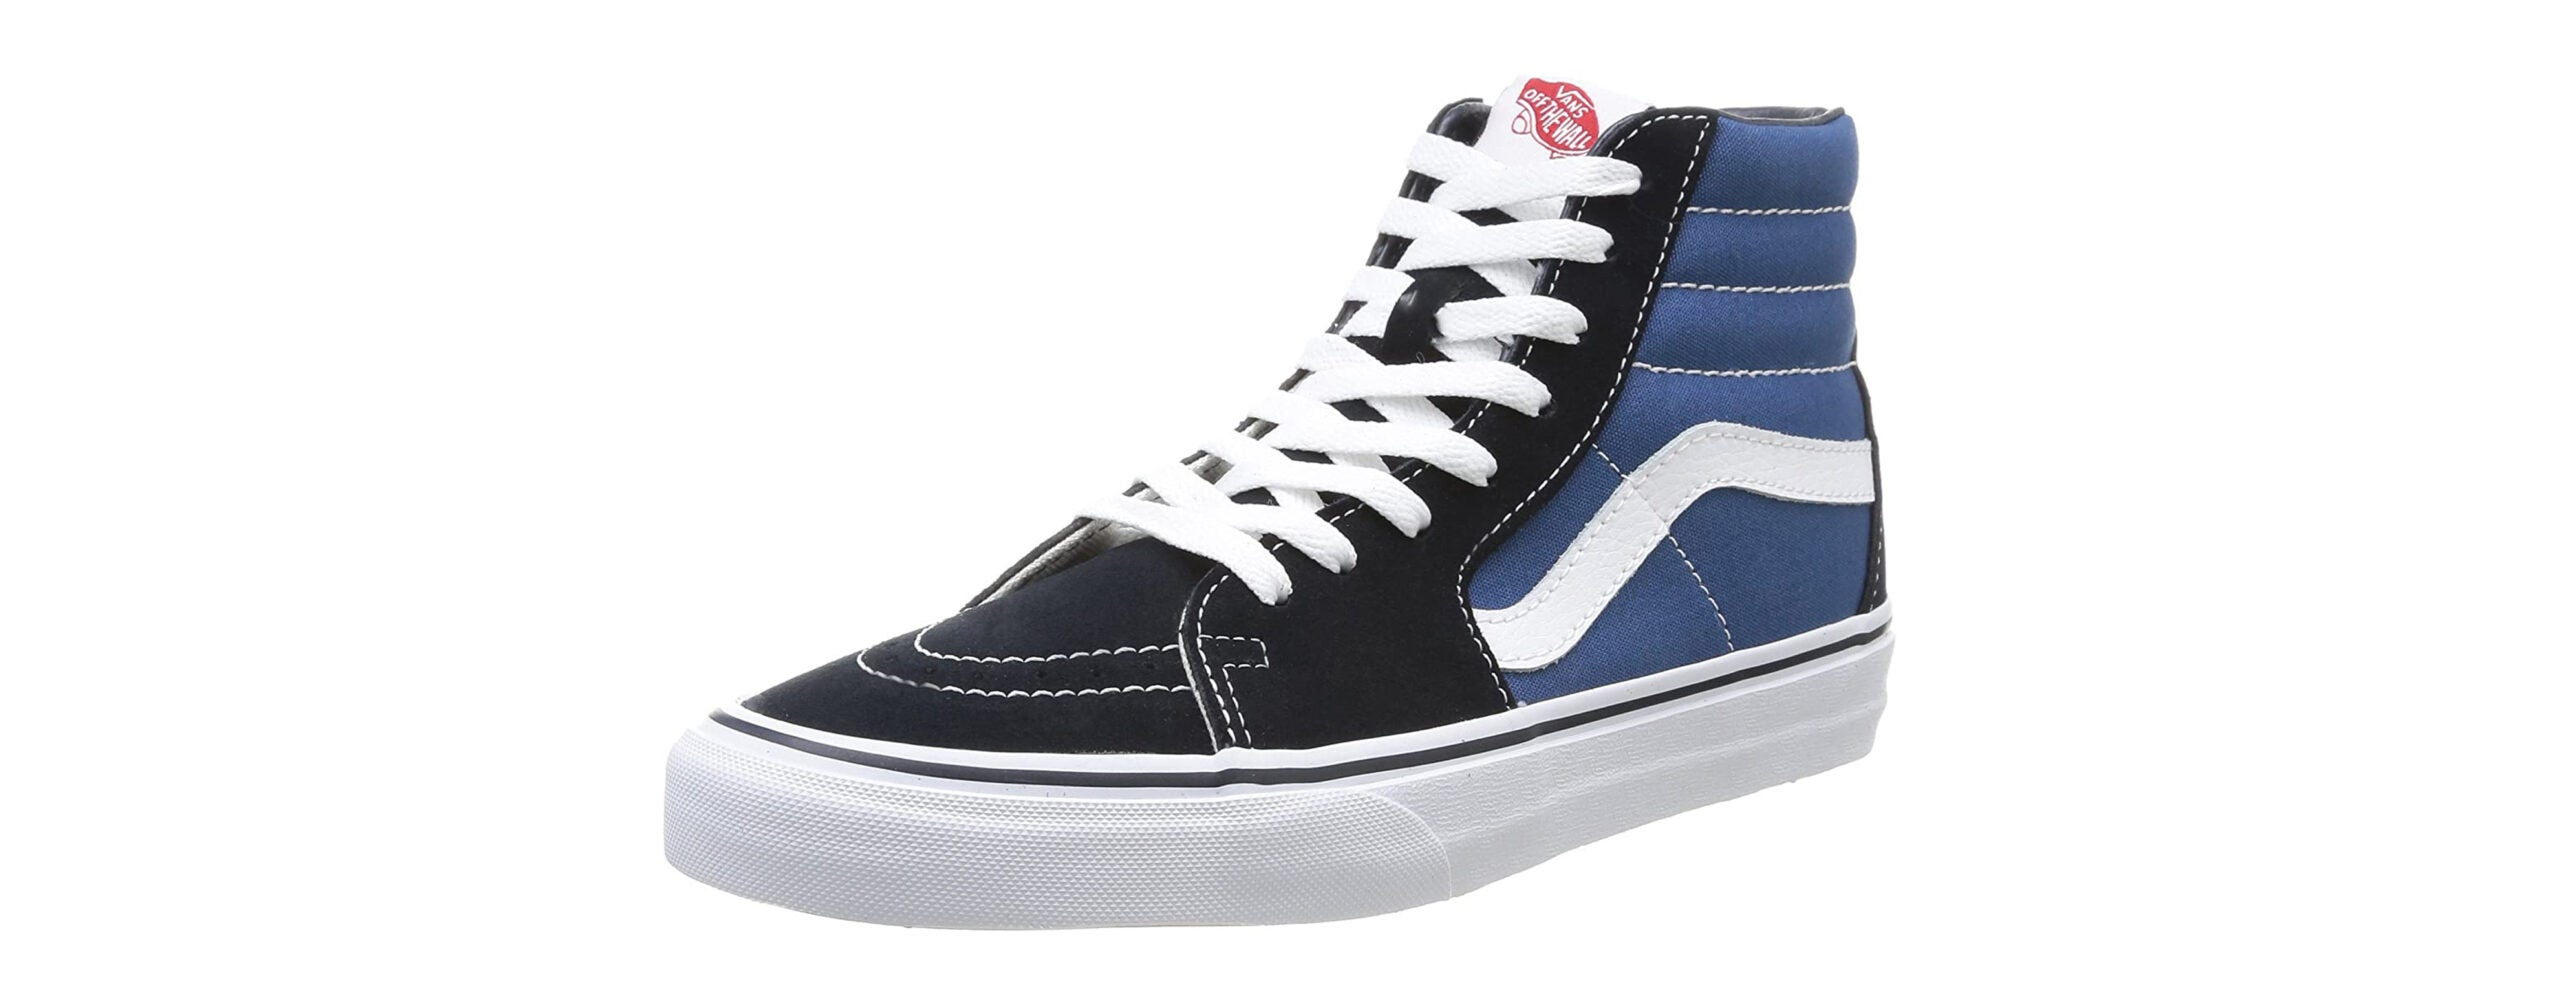 The Best Vans for Skating (Review and Buying Guide) in 2021